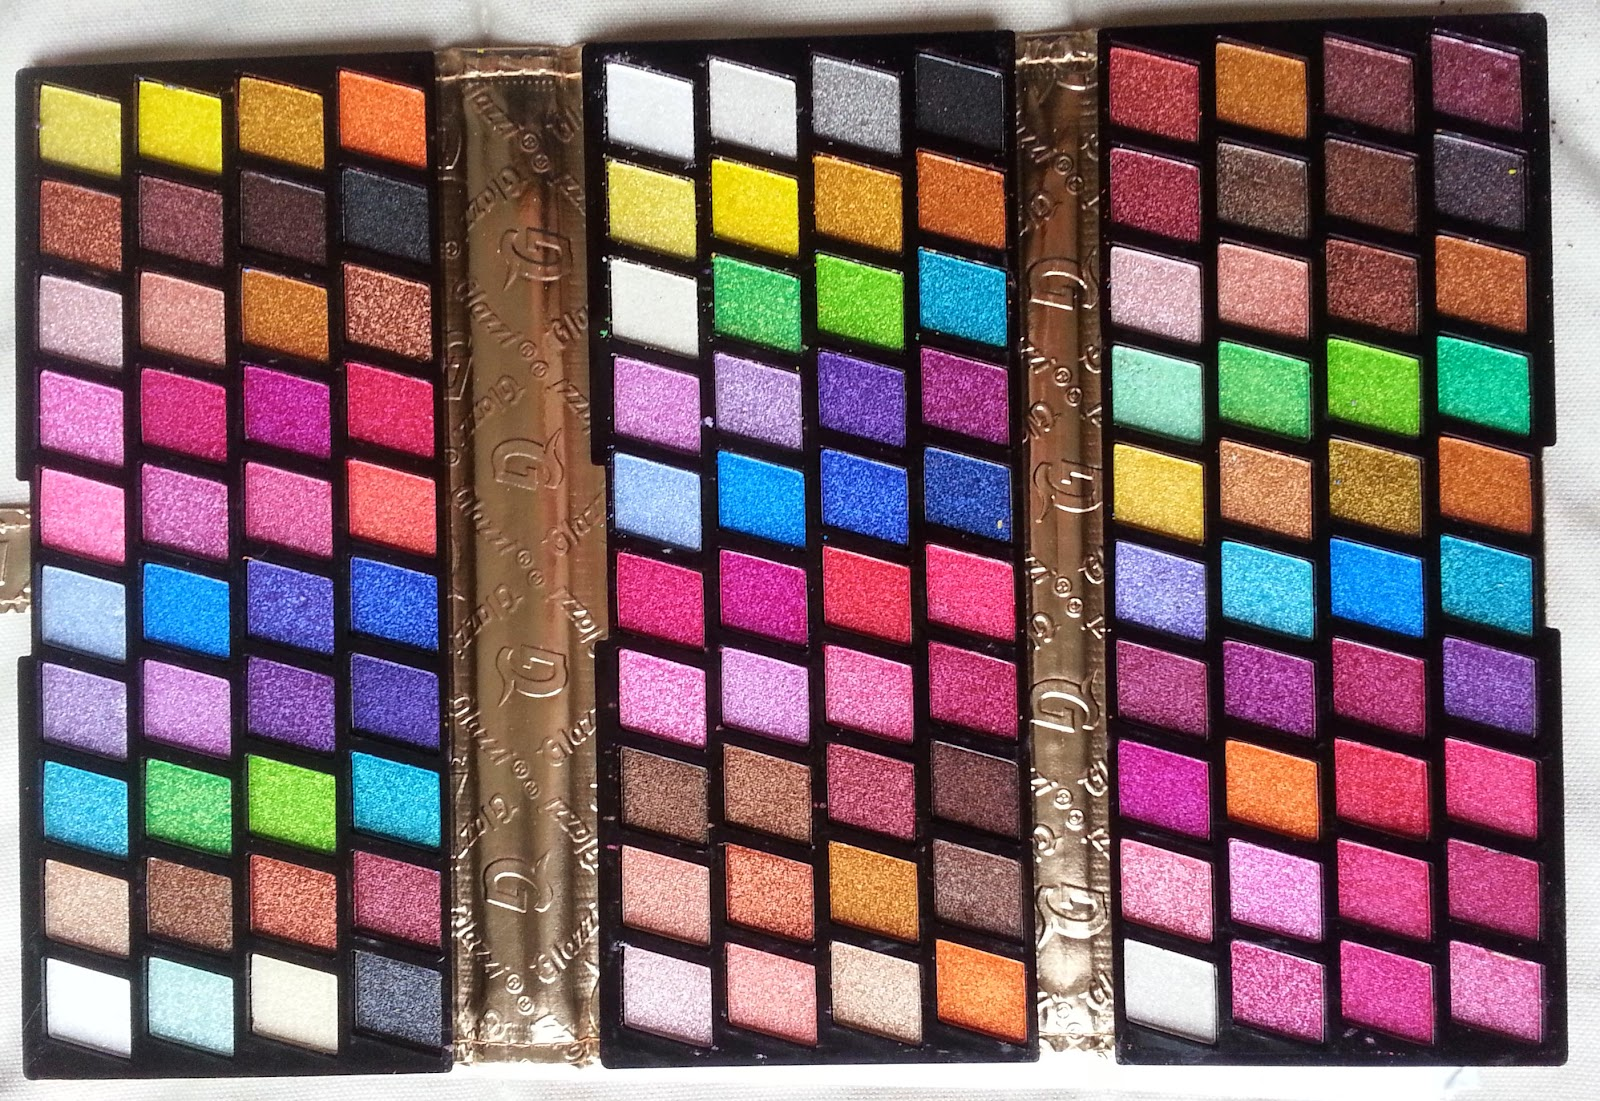 http://www.vitrine-beaute.com/maquillage-yeux/1379-fard-%C3%A0-paupi%C3%A8re-120-couleurs.html